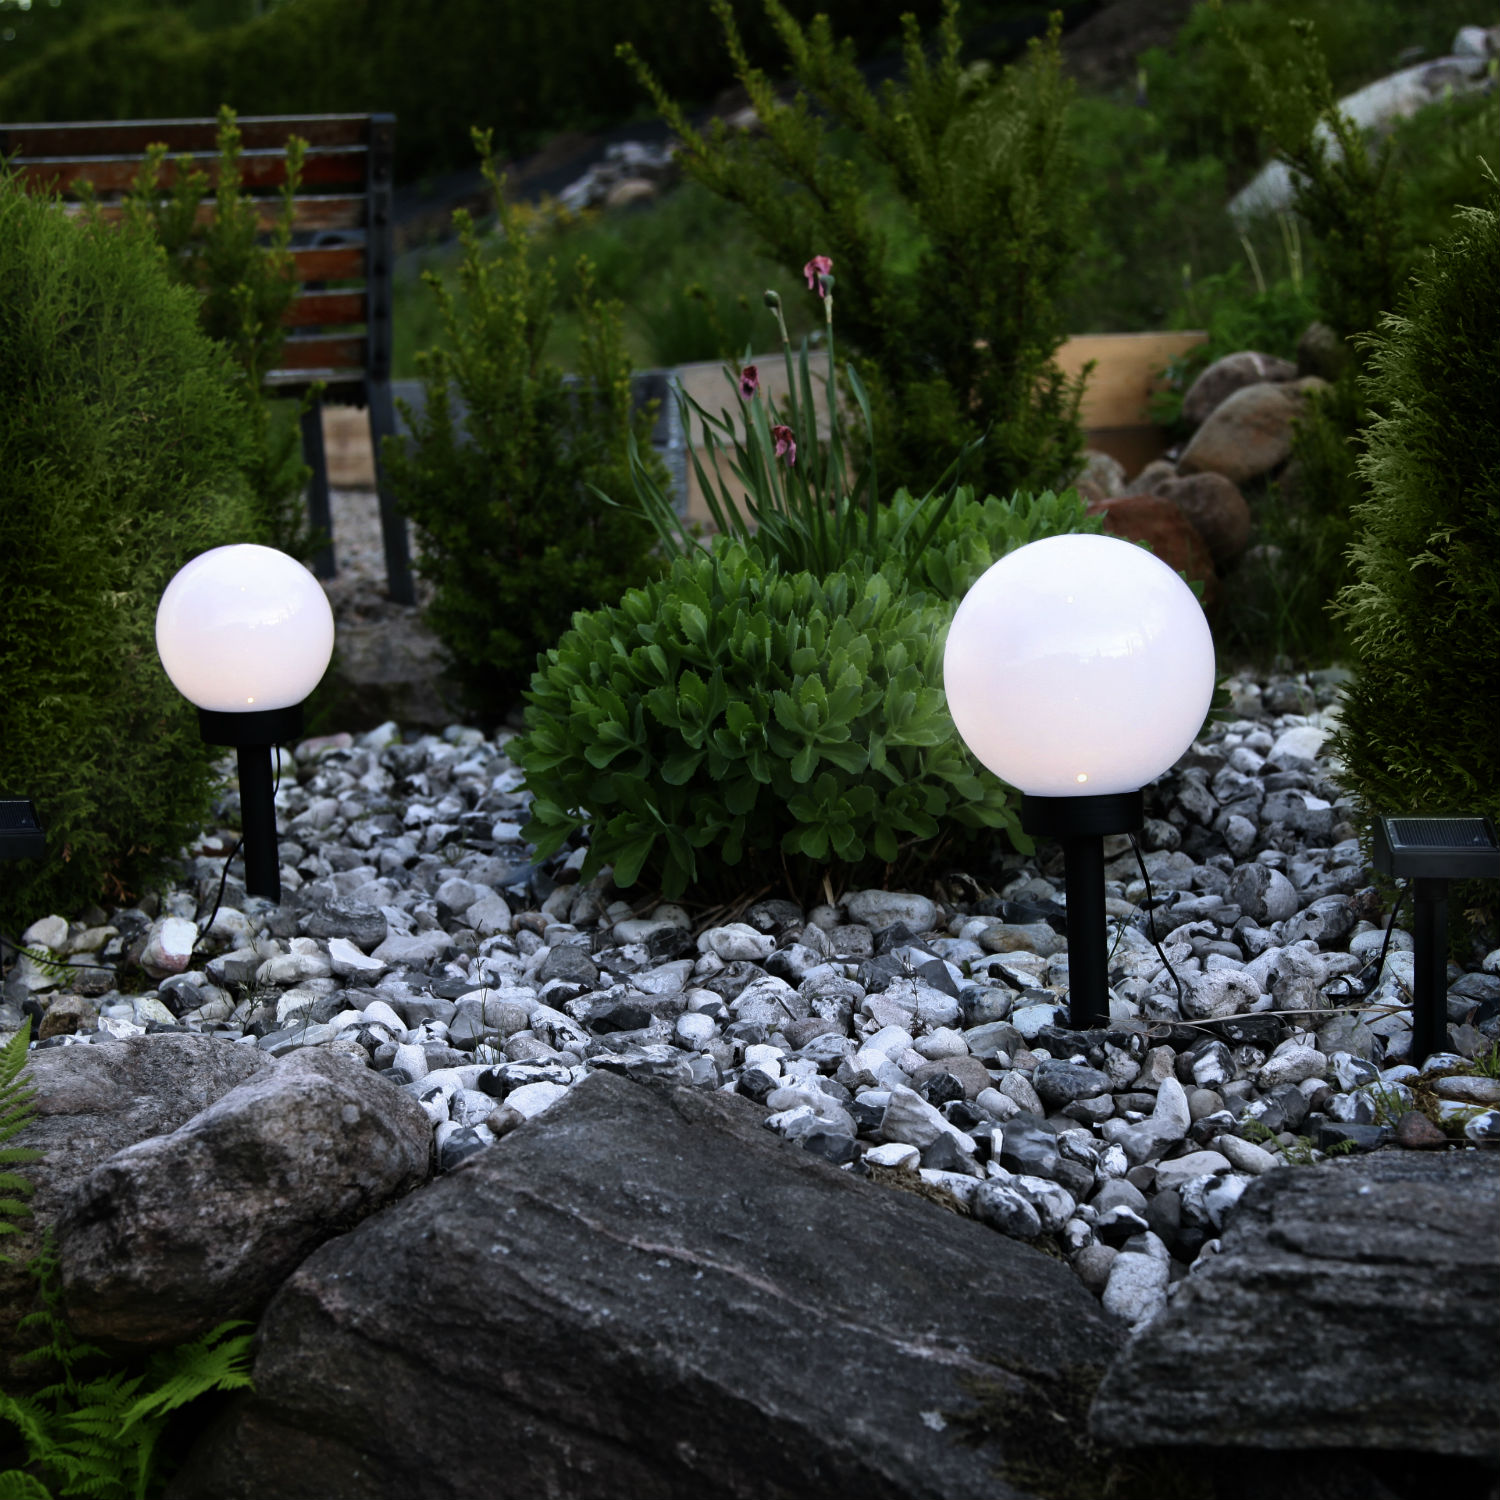 Awesome eclairage exterieur lampe jardin photos design for Lampe eclairage jardin